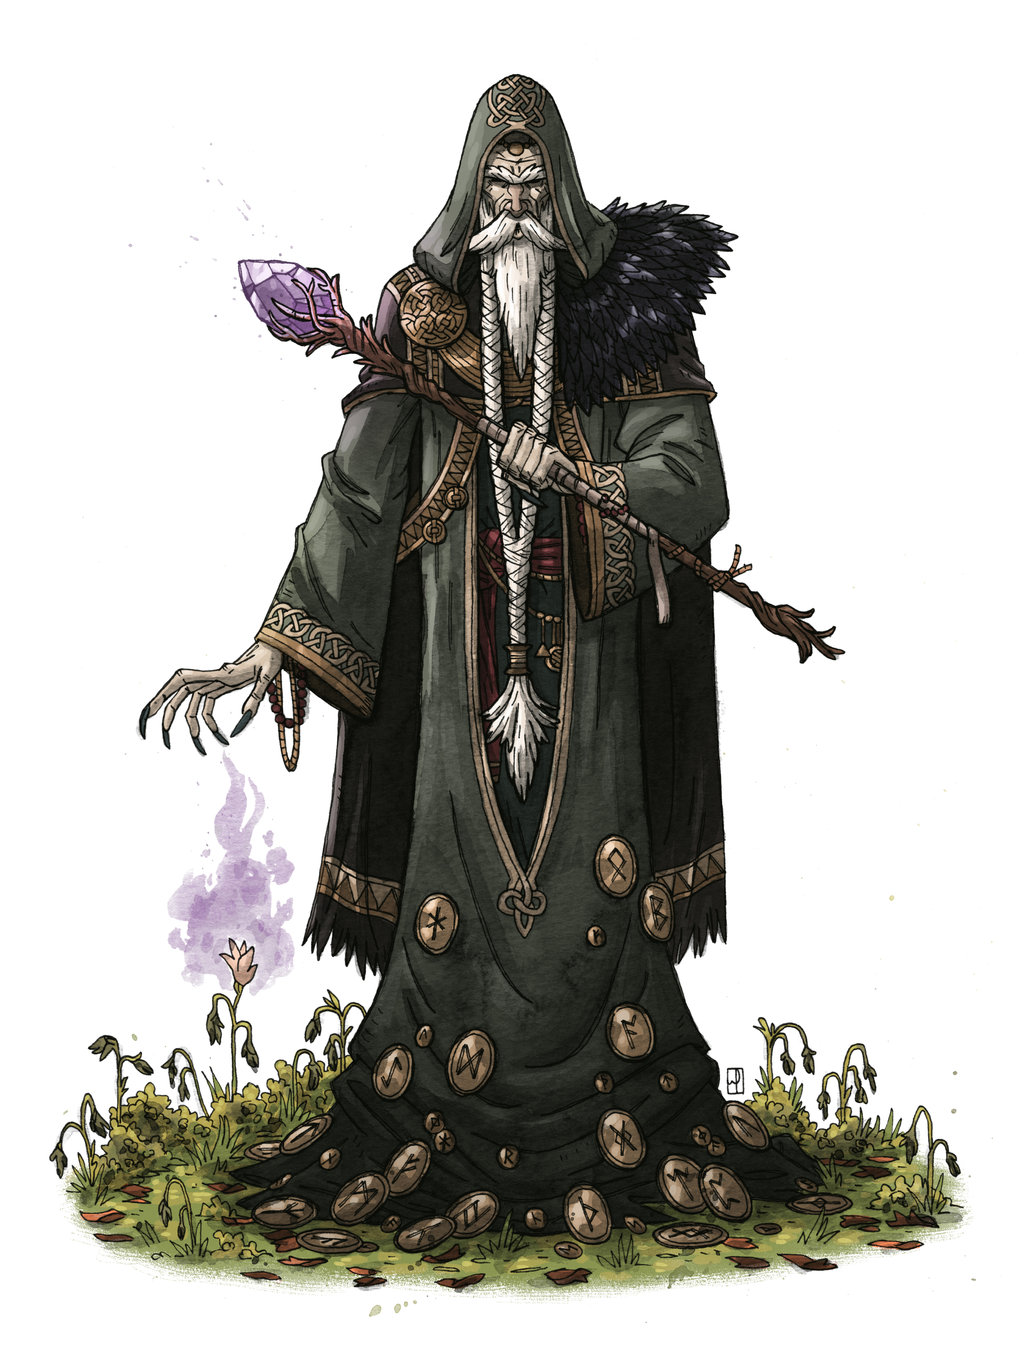 blighted_druid_by_mscorley-d5tumd4.jpg